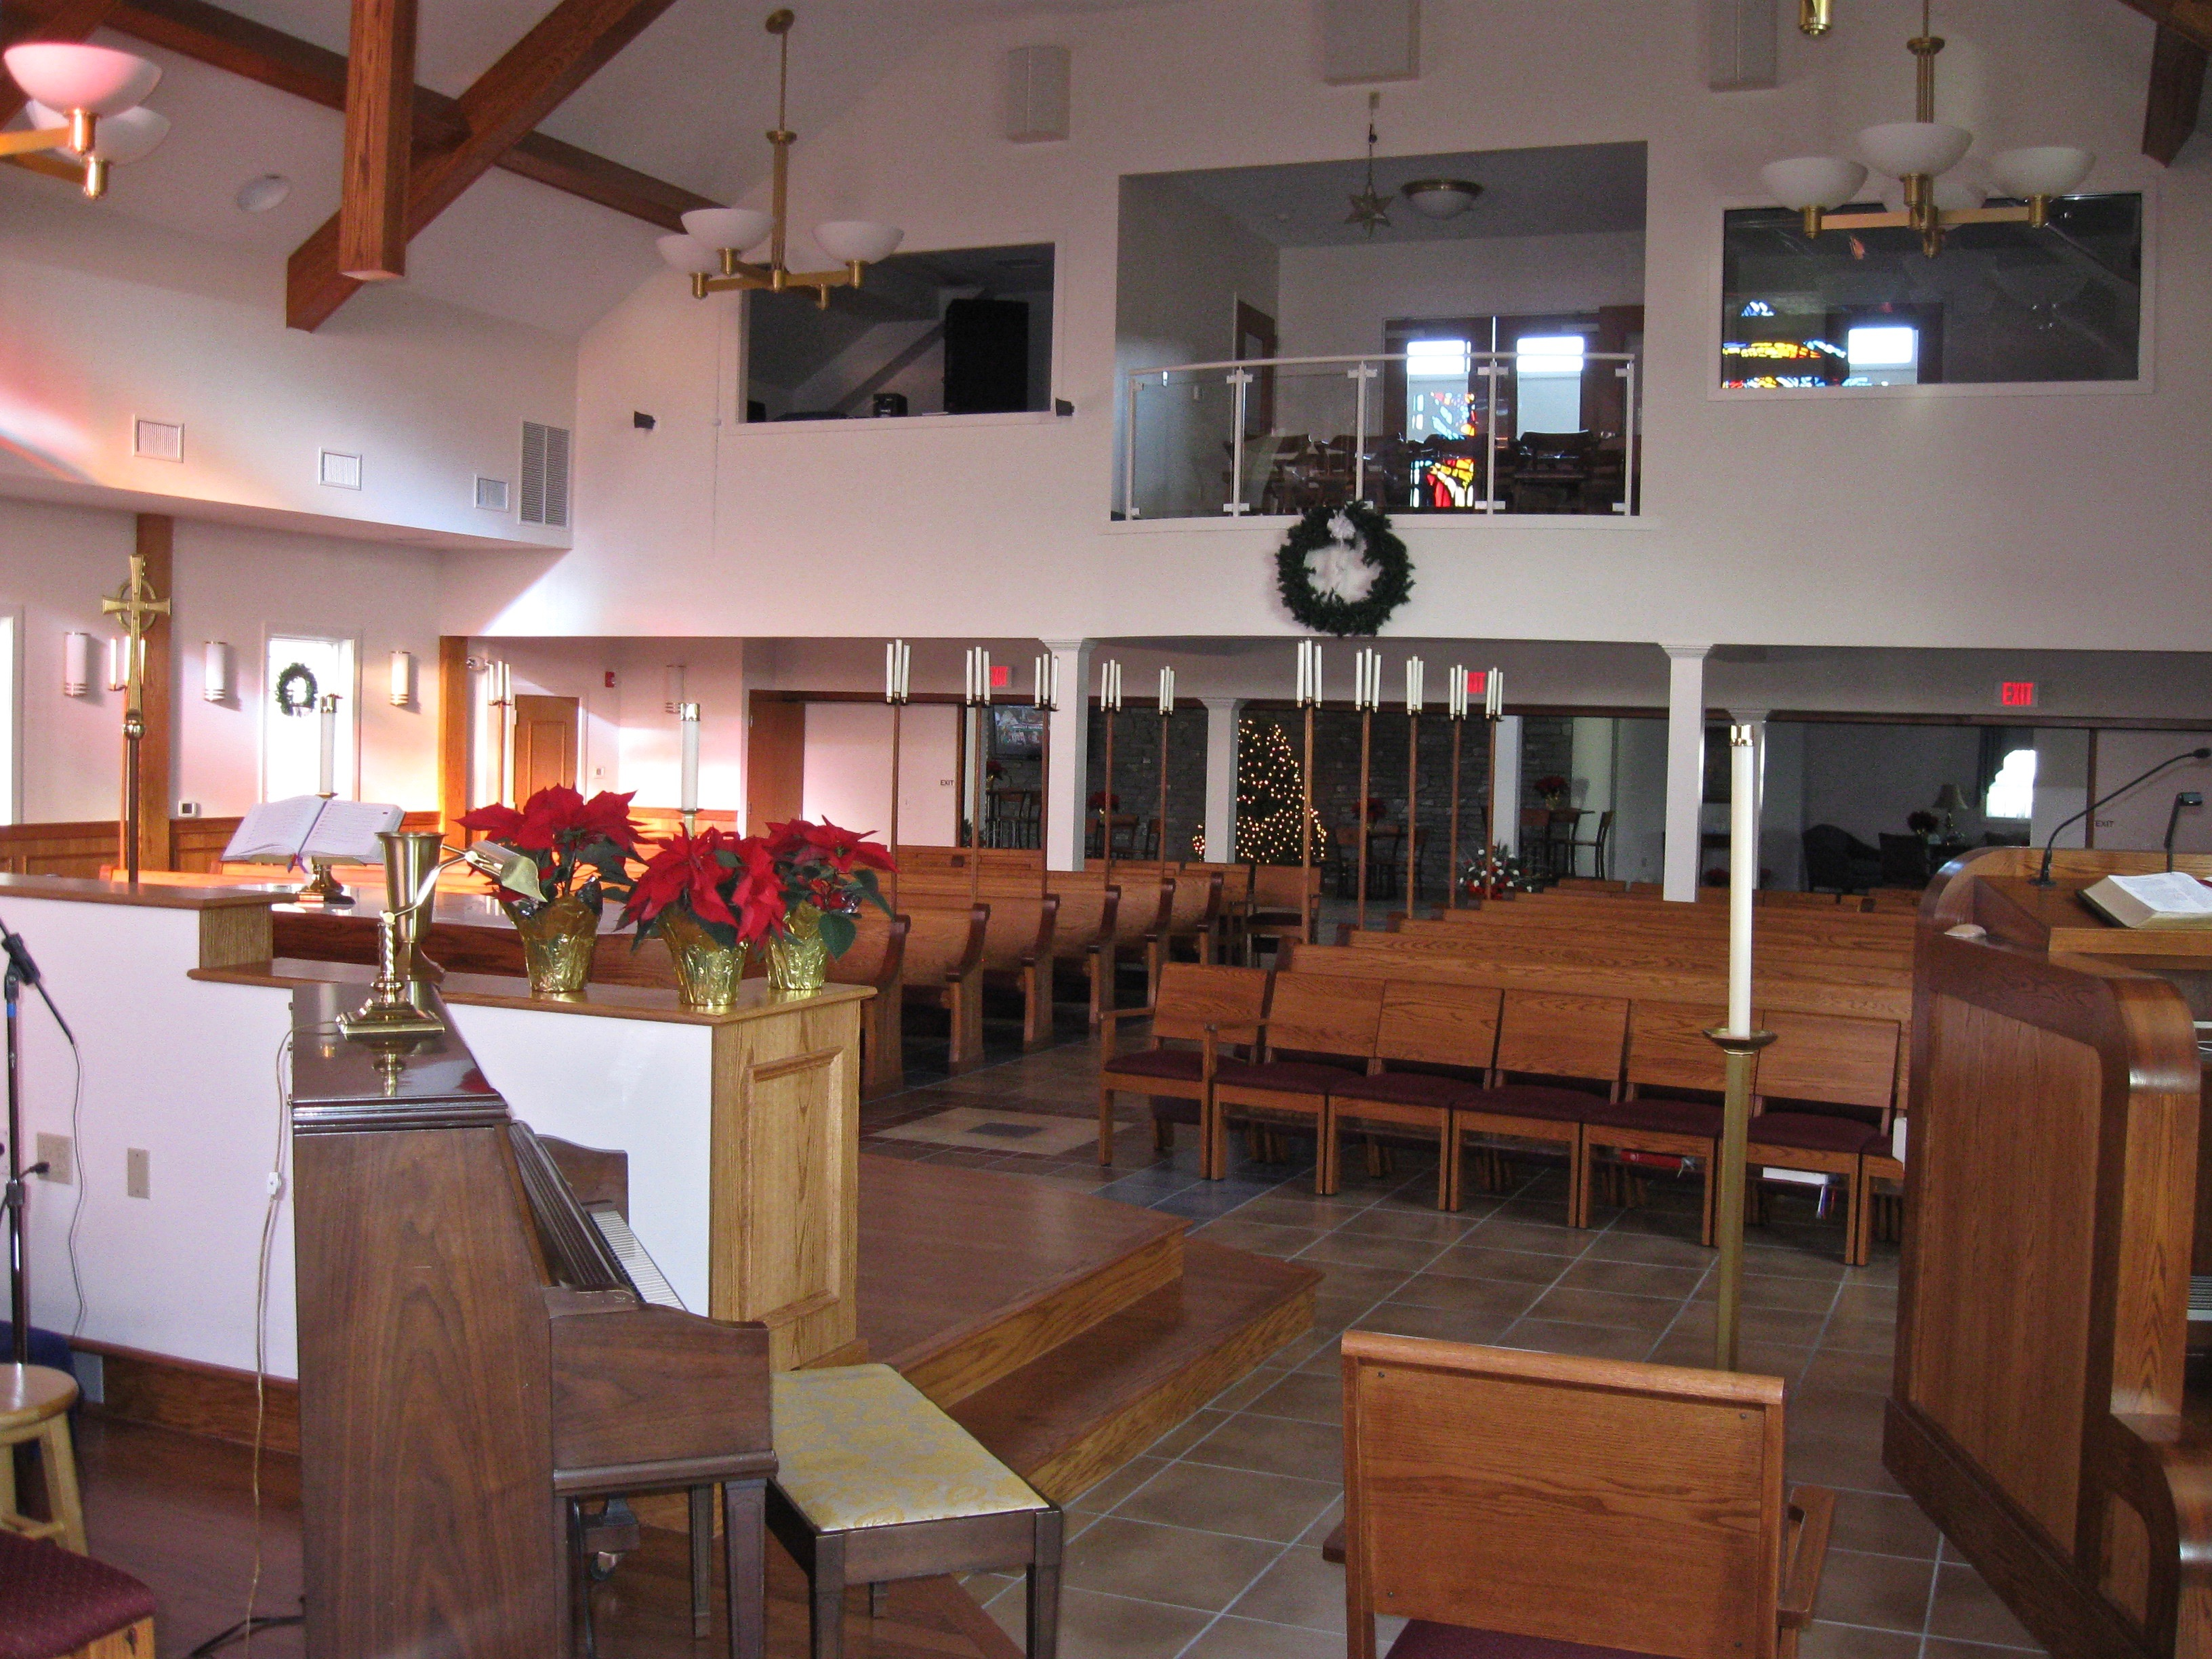 Sanctuary from Altar